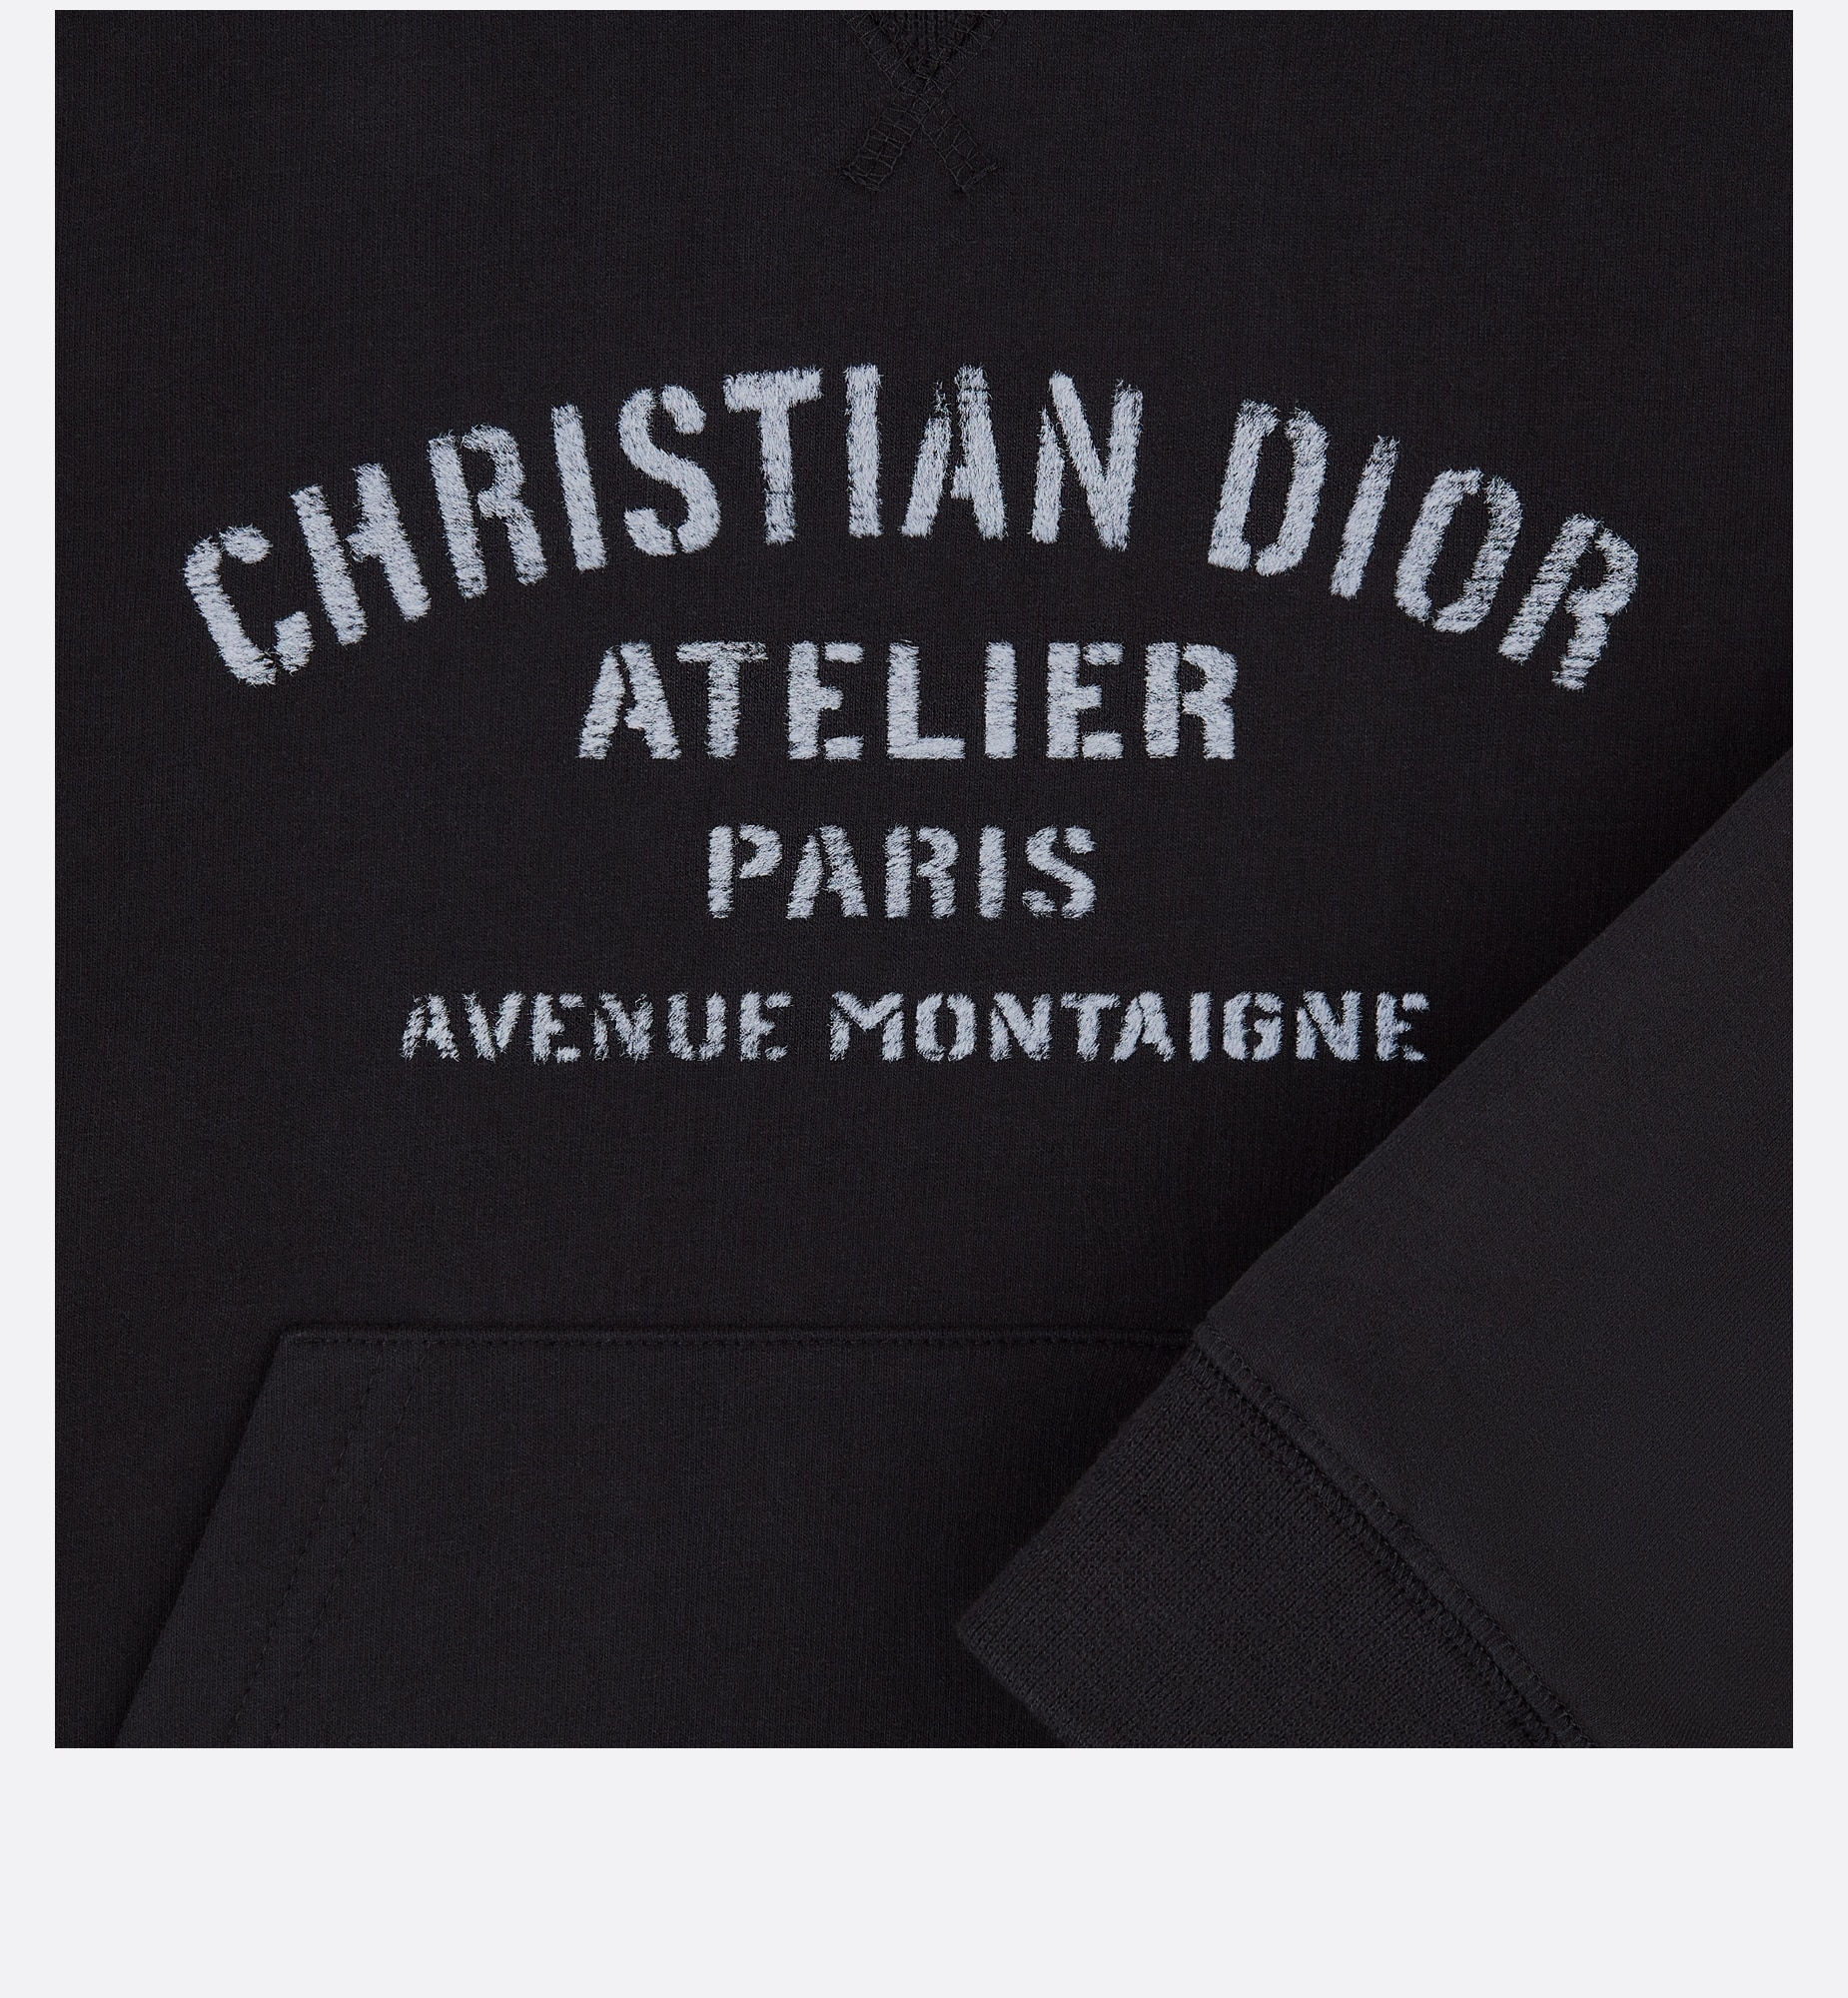 'Christian Dior Atelier' Hooded Sweatshirt Detailed view Open gallery